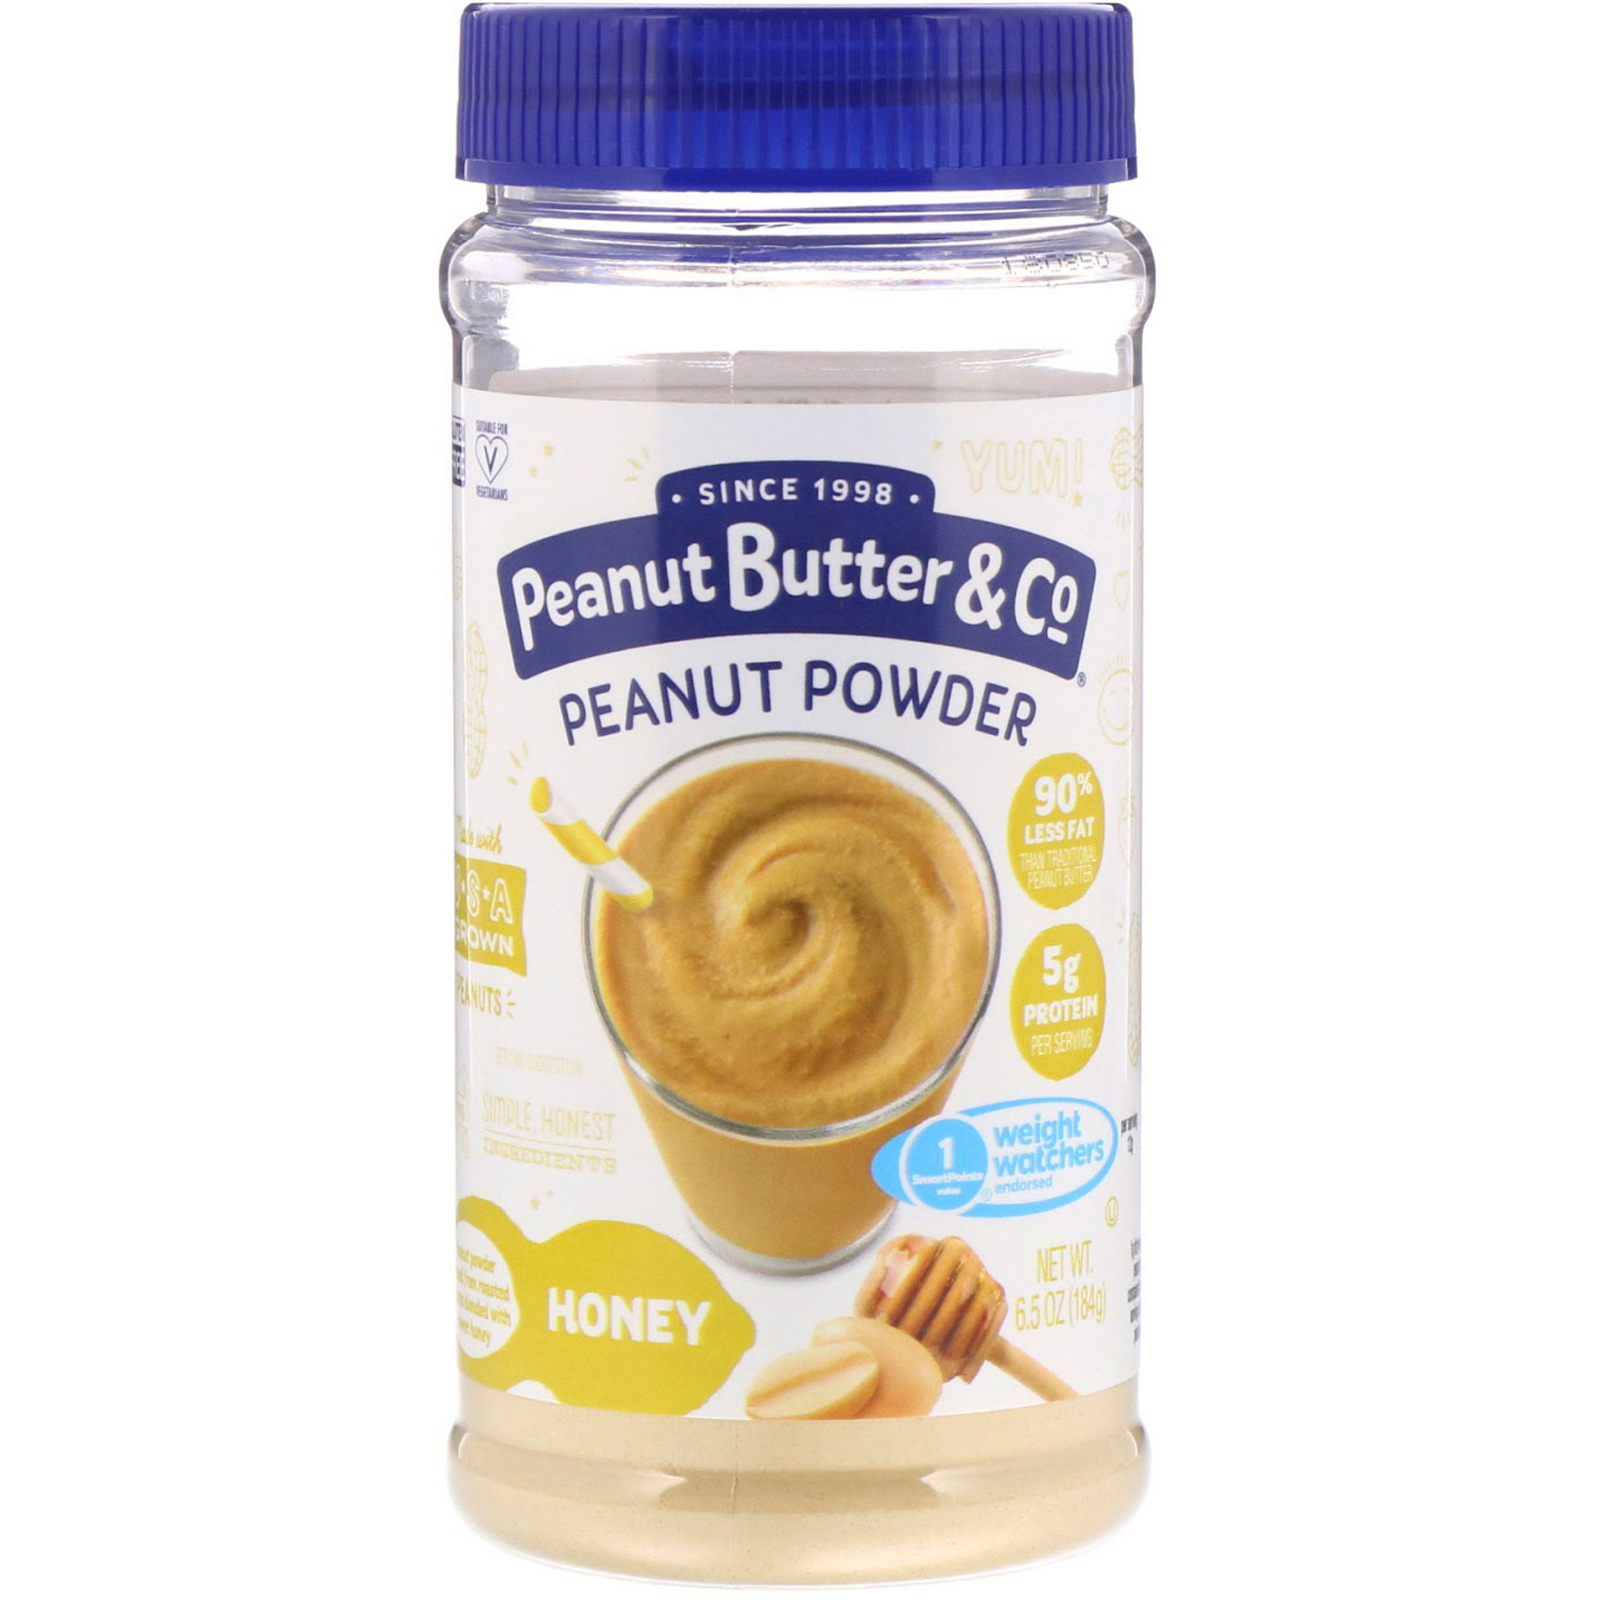 Peanut Butter & Co , Mighty Nut, Powdered Peanut Butter